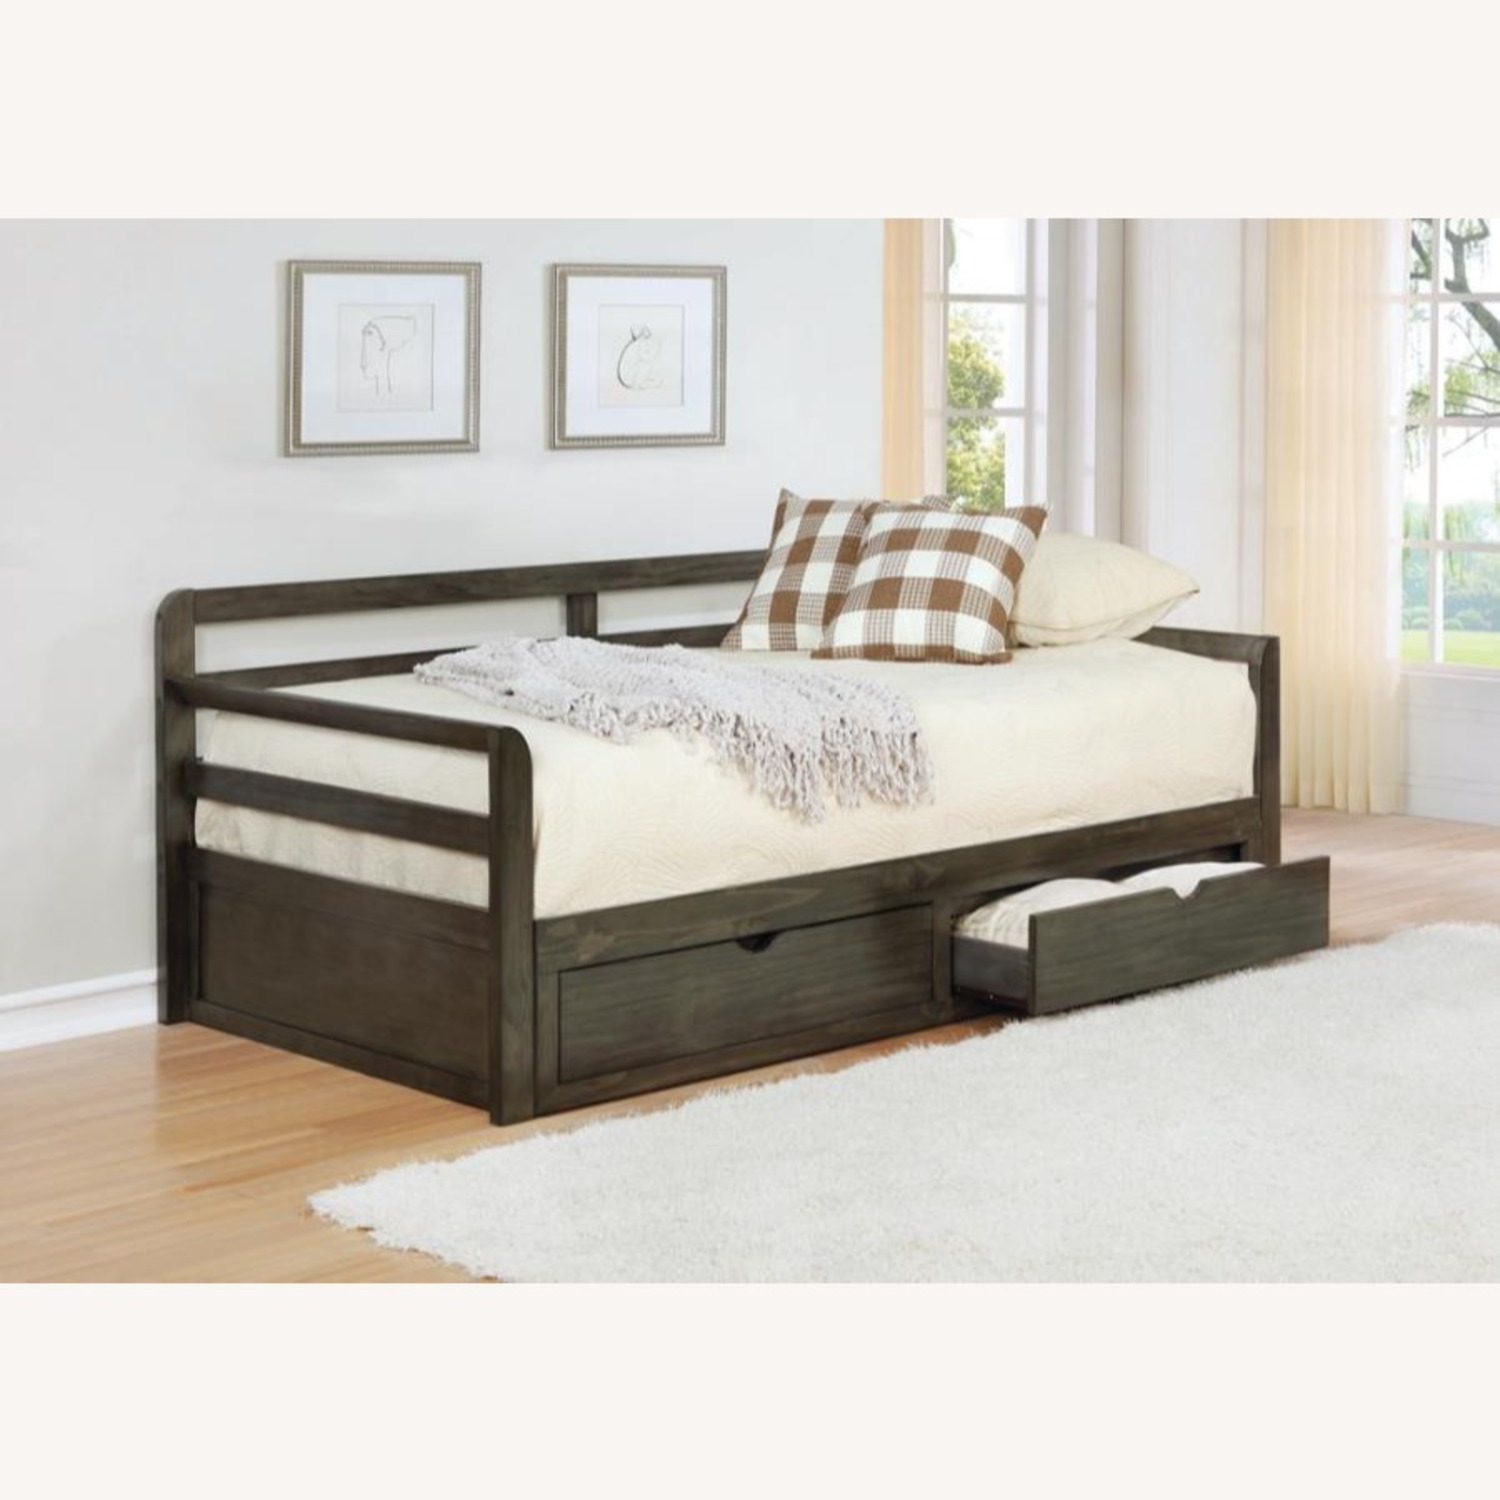 Daybed In Grey Wood Finish W/ Trundle - image-2